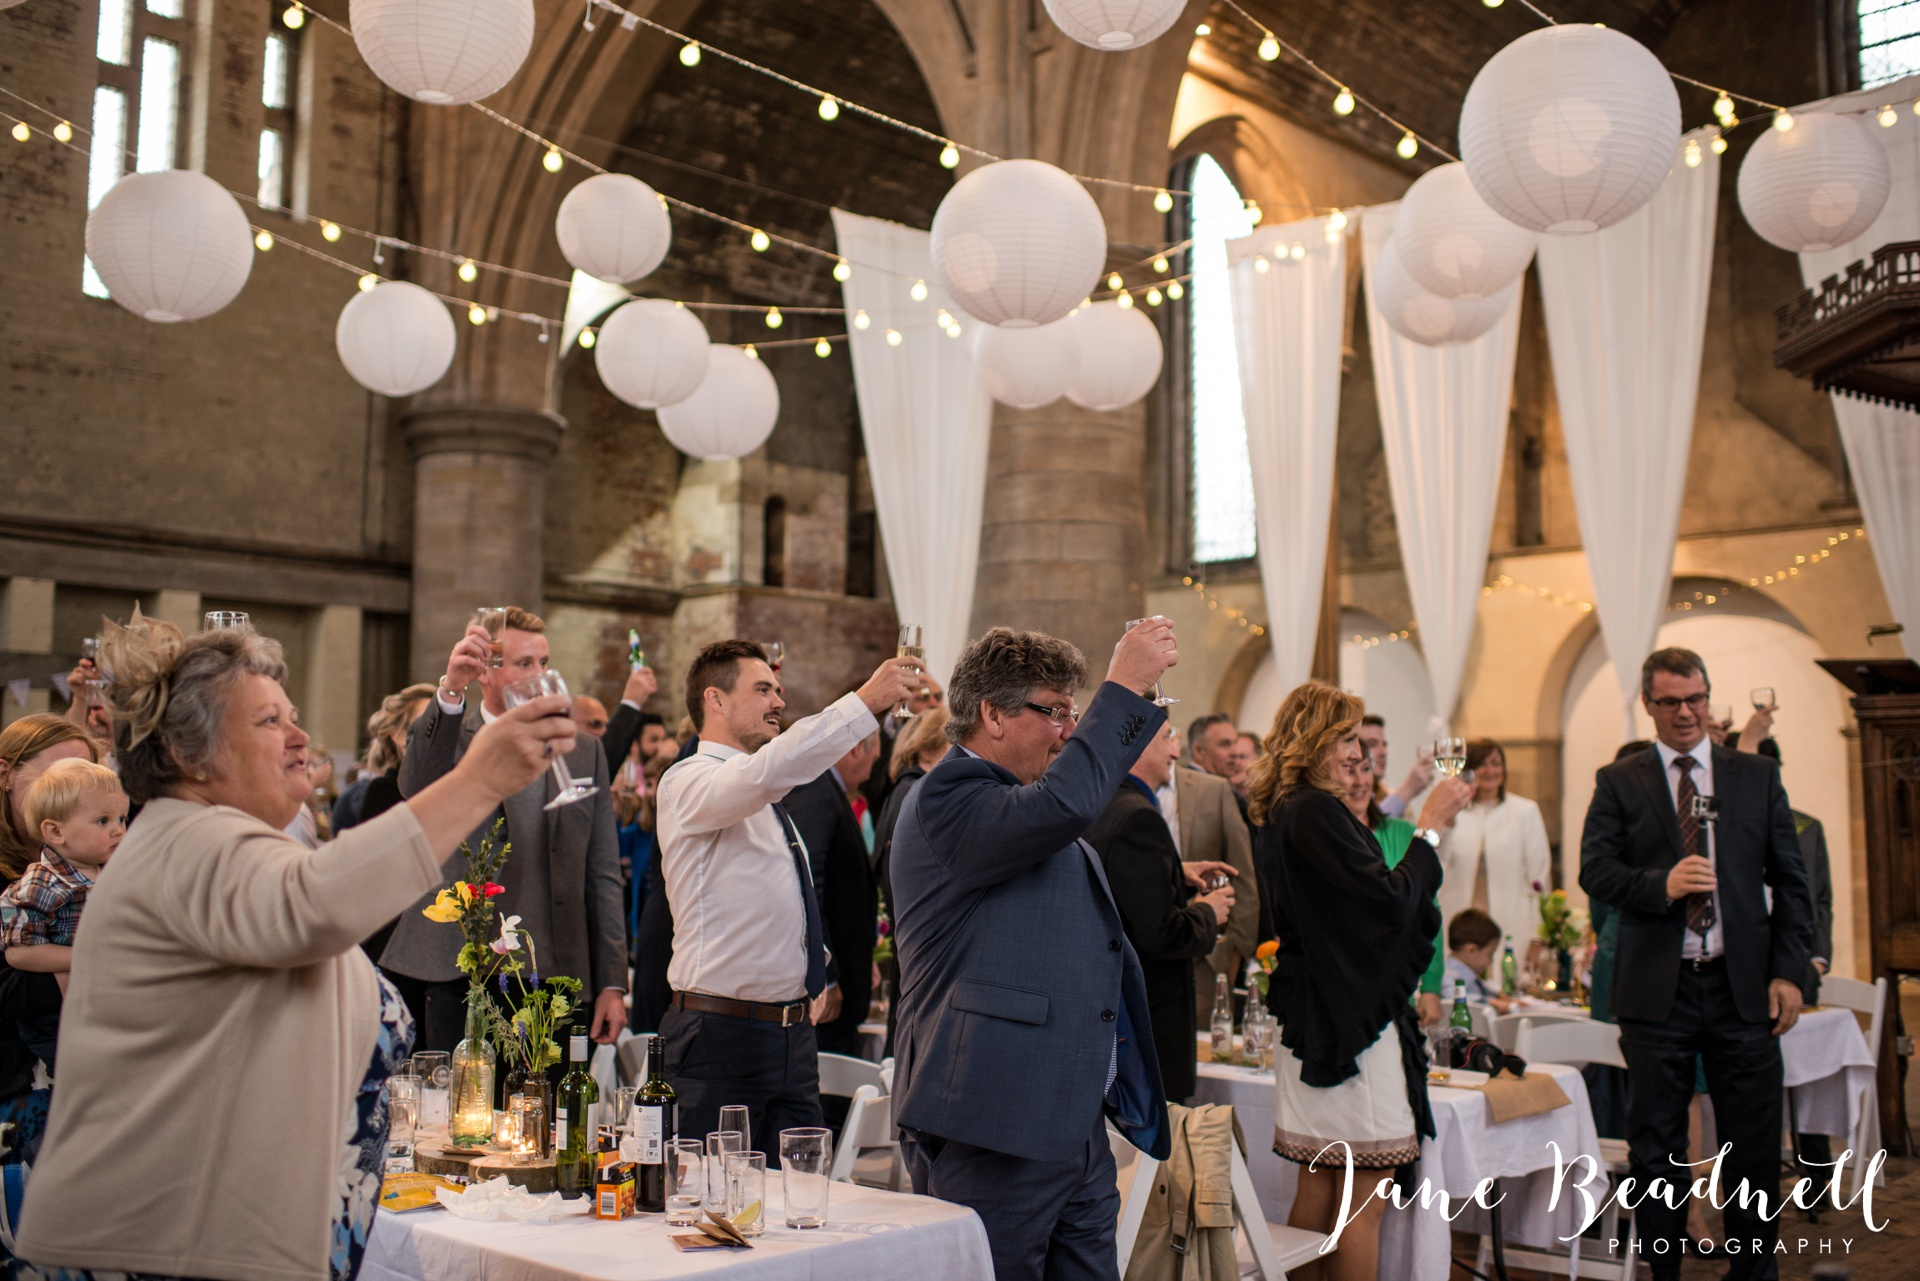 Left Bank Centre Leeds wedding photography by Jane Beadnell photography Yorkshire_0120